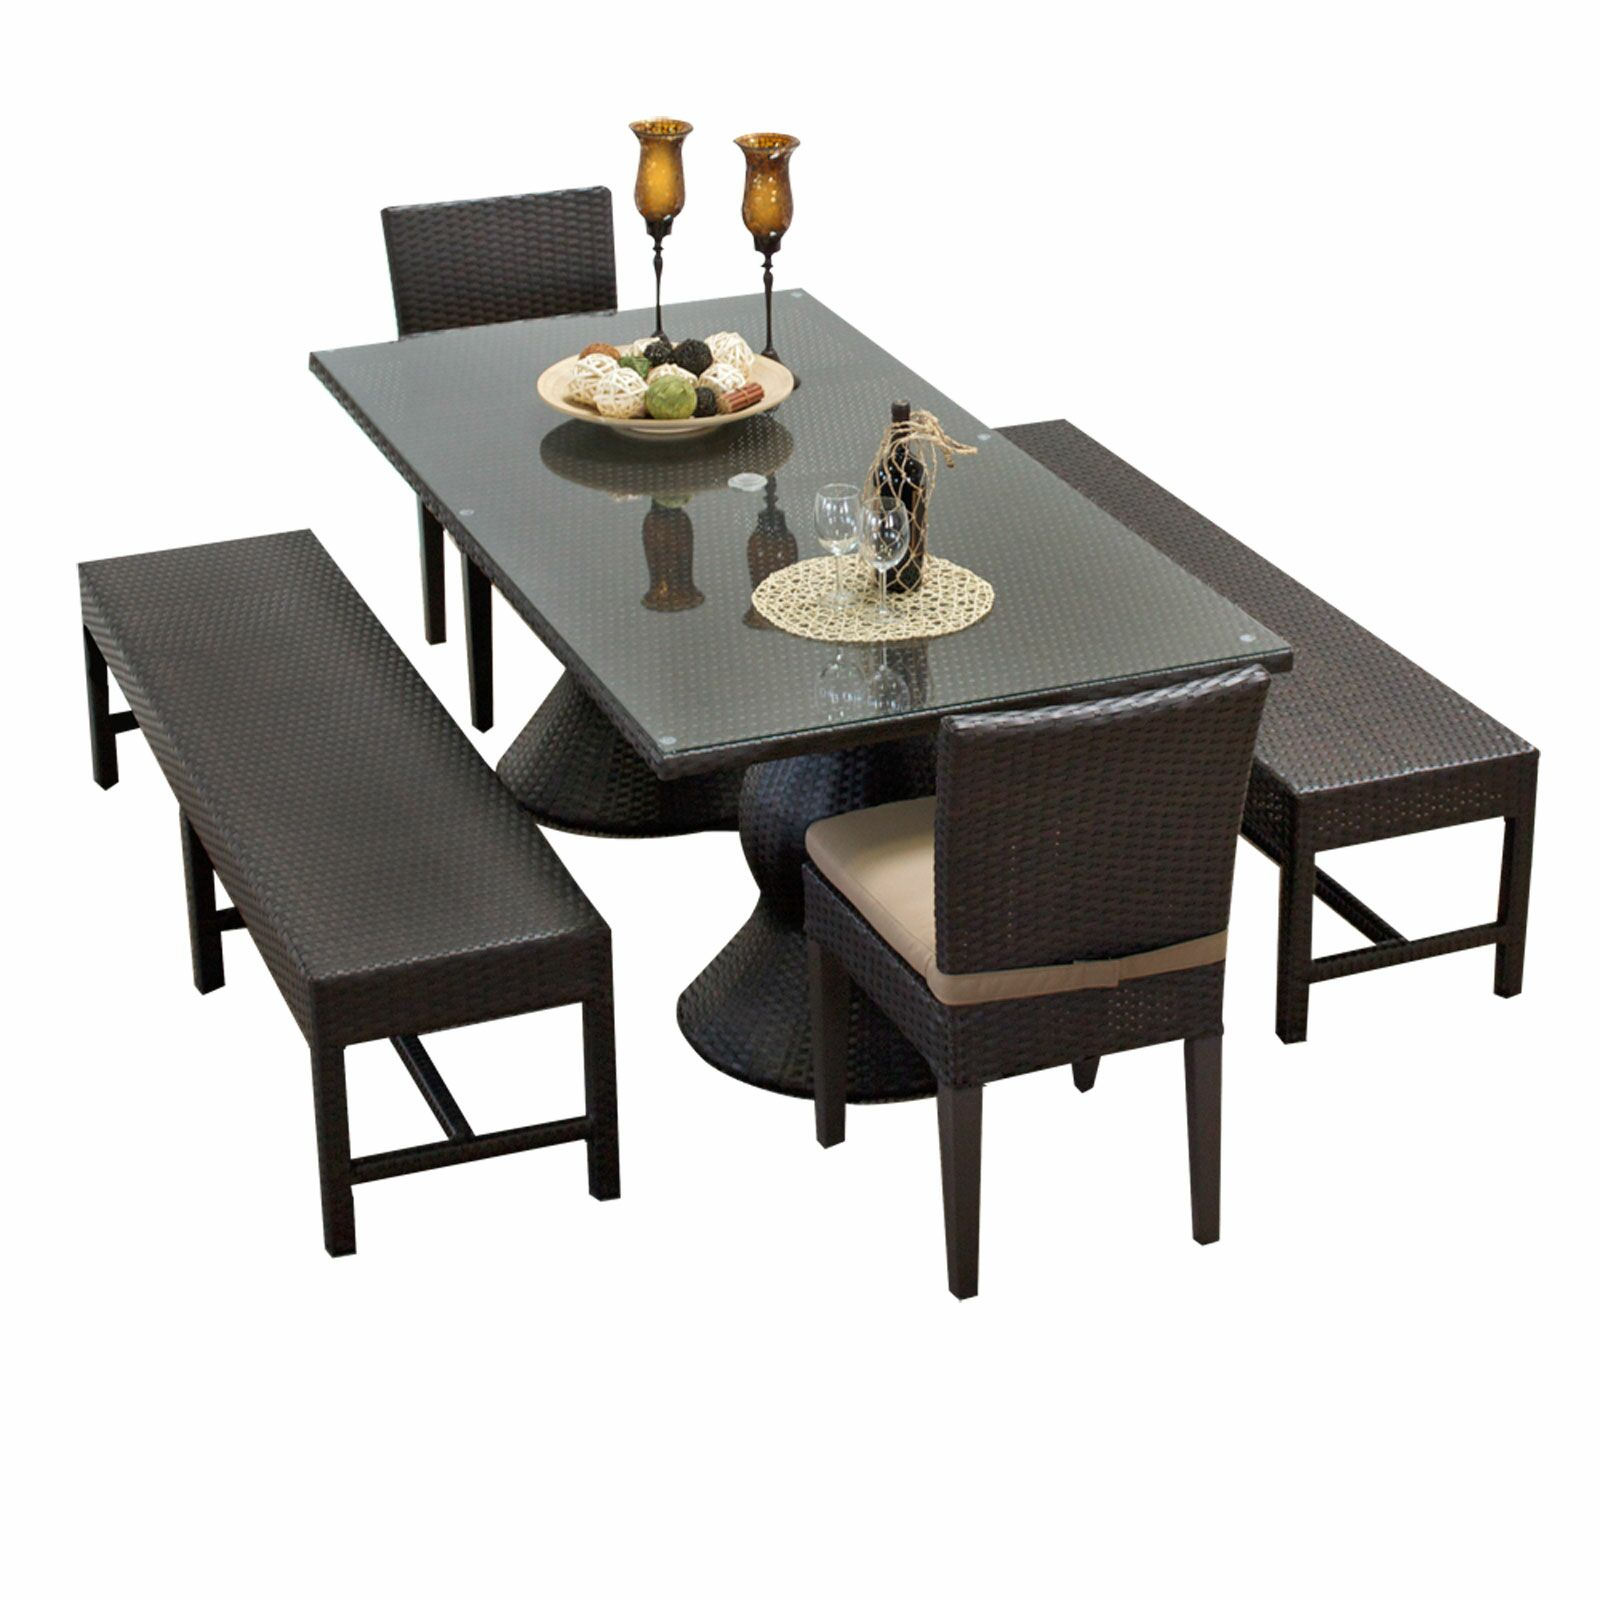 Napa 5 Piece Dining Set with Cushions Cushion Color: Wheat